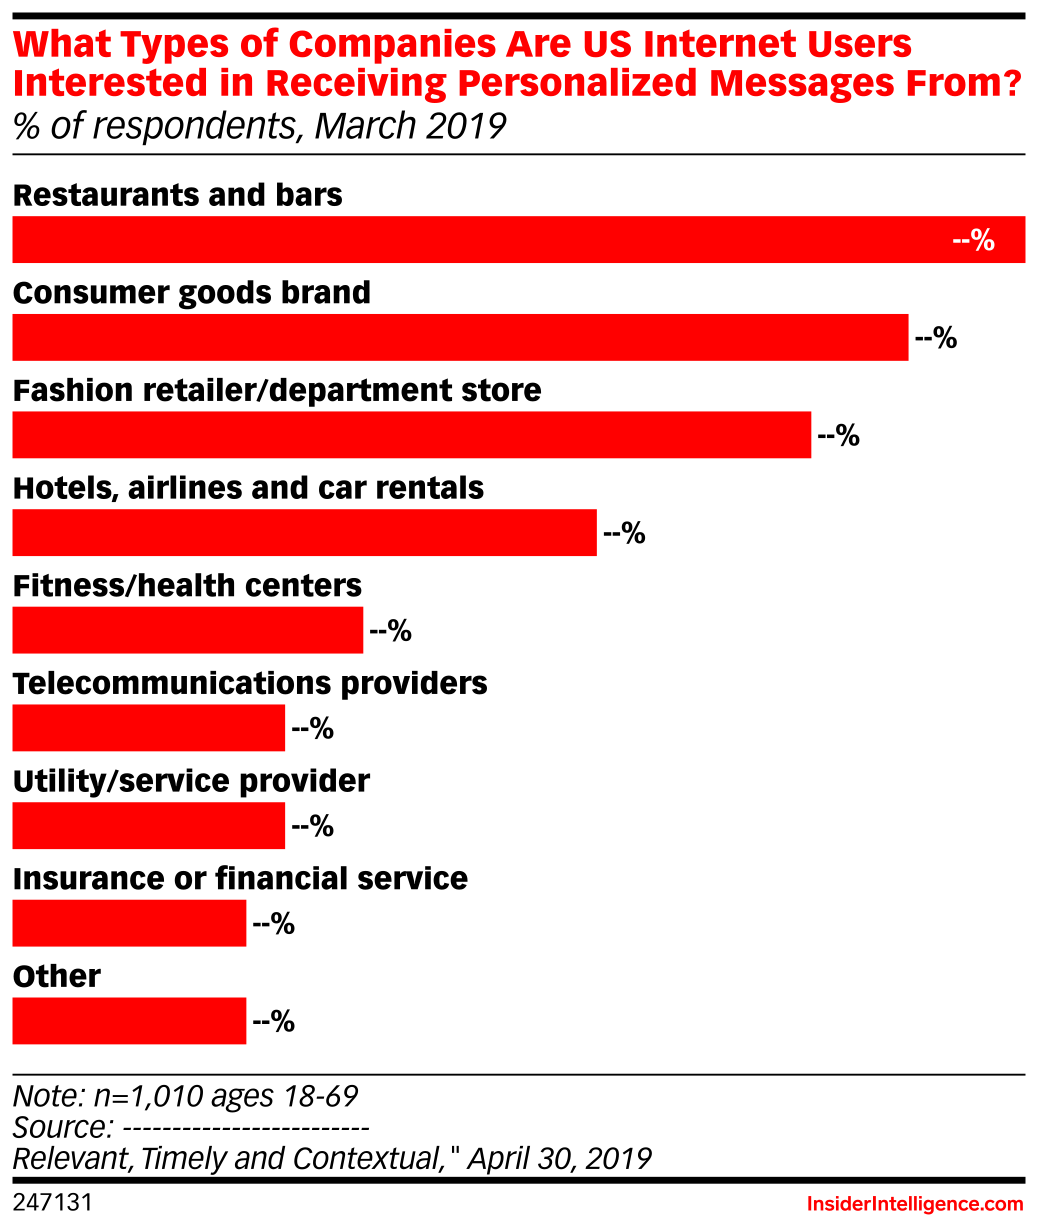 What Types of Companies Are US Internet Users Interested in Receiving Personalized Messages From? (% of respondents, March 2019)